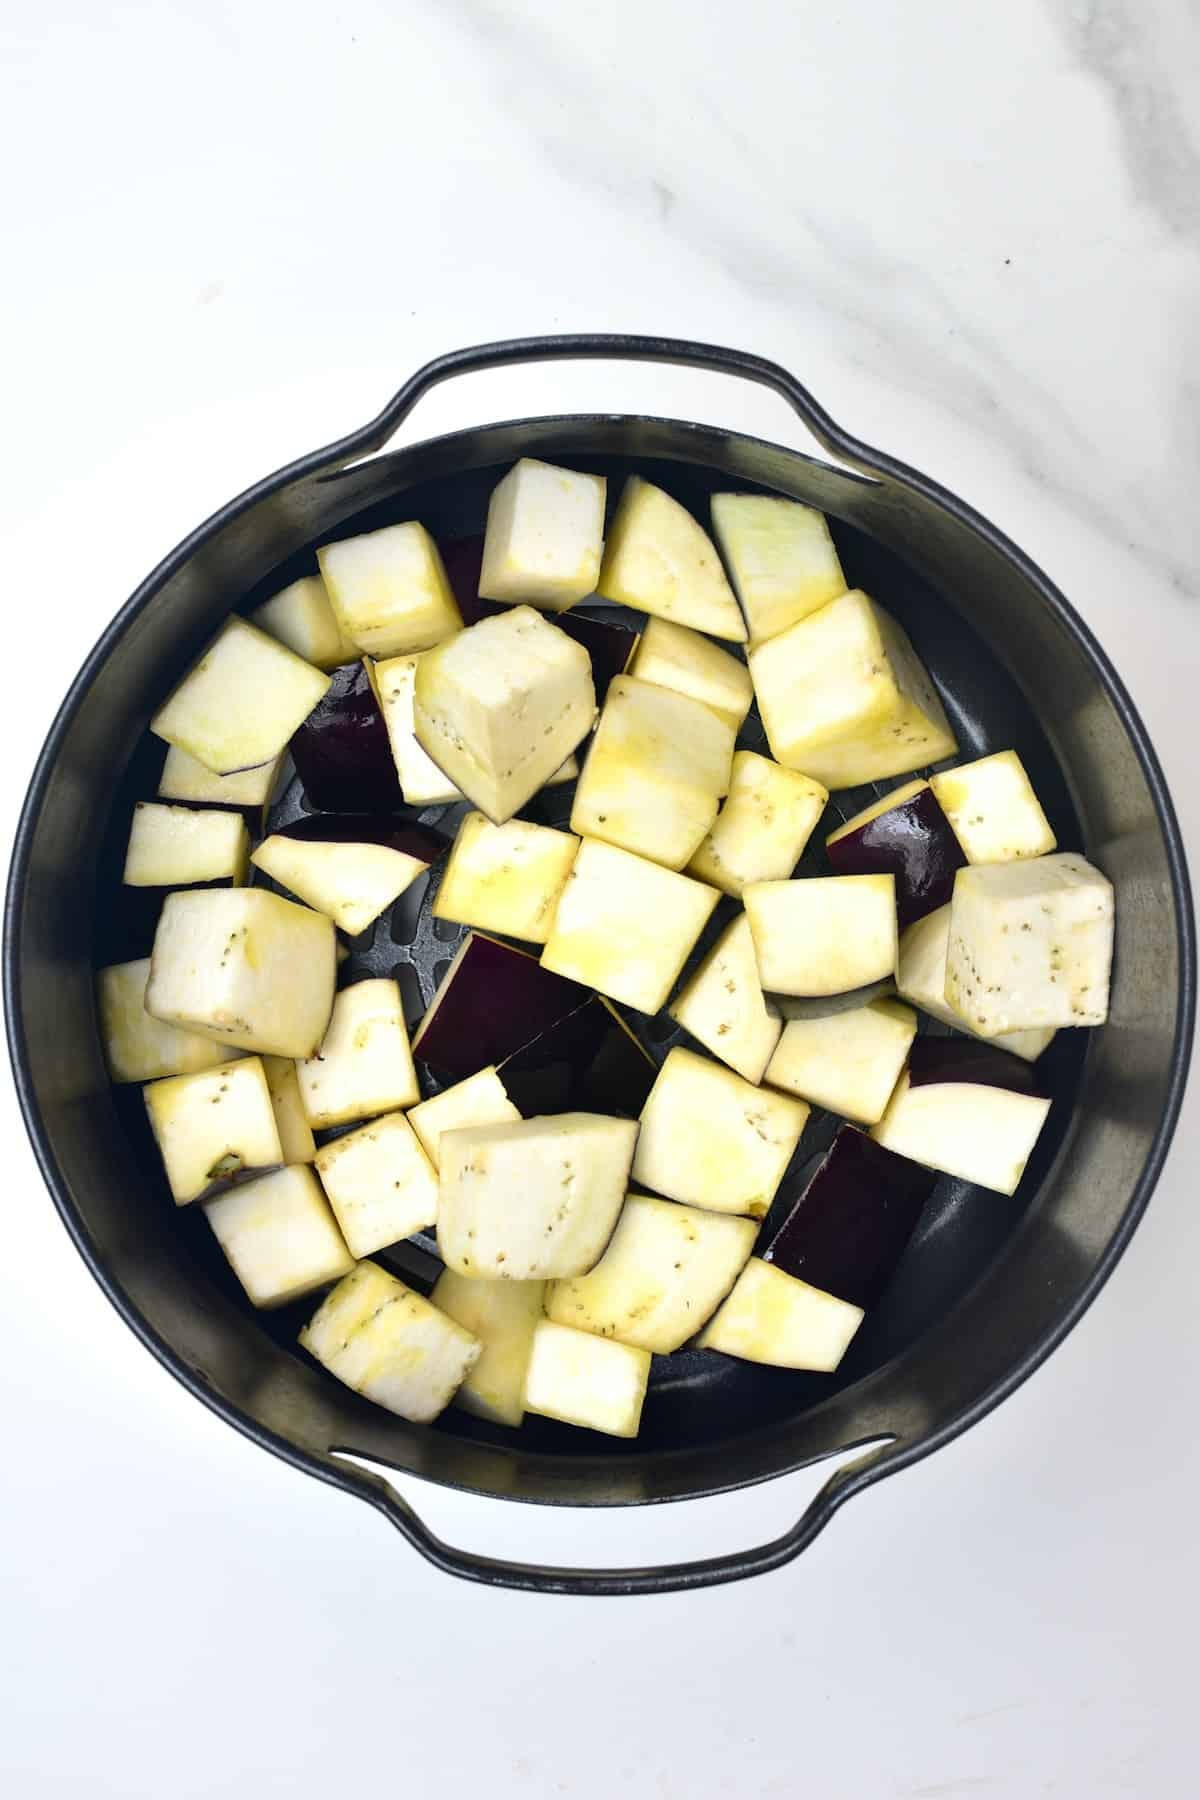 Eggplant in an air fryer tray